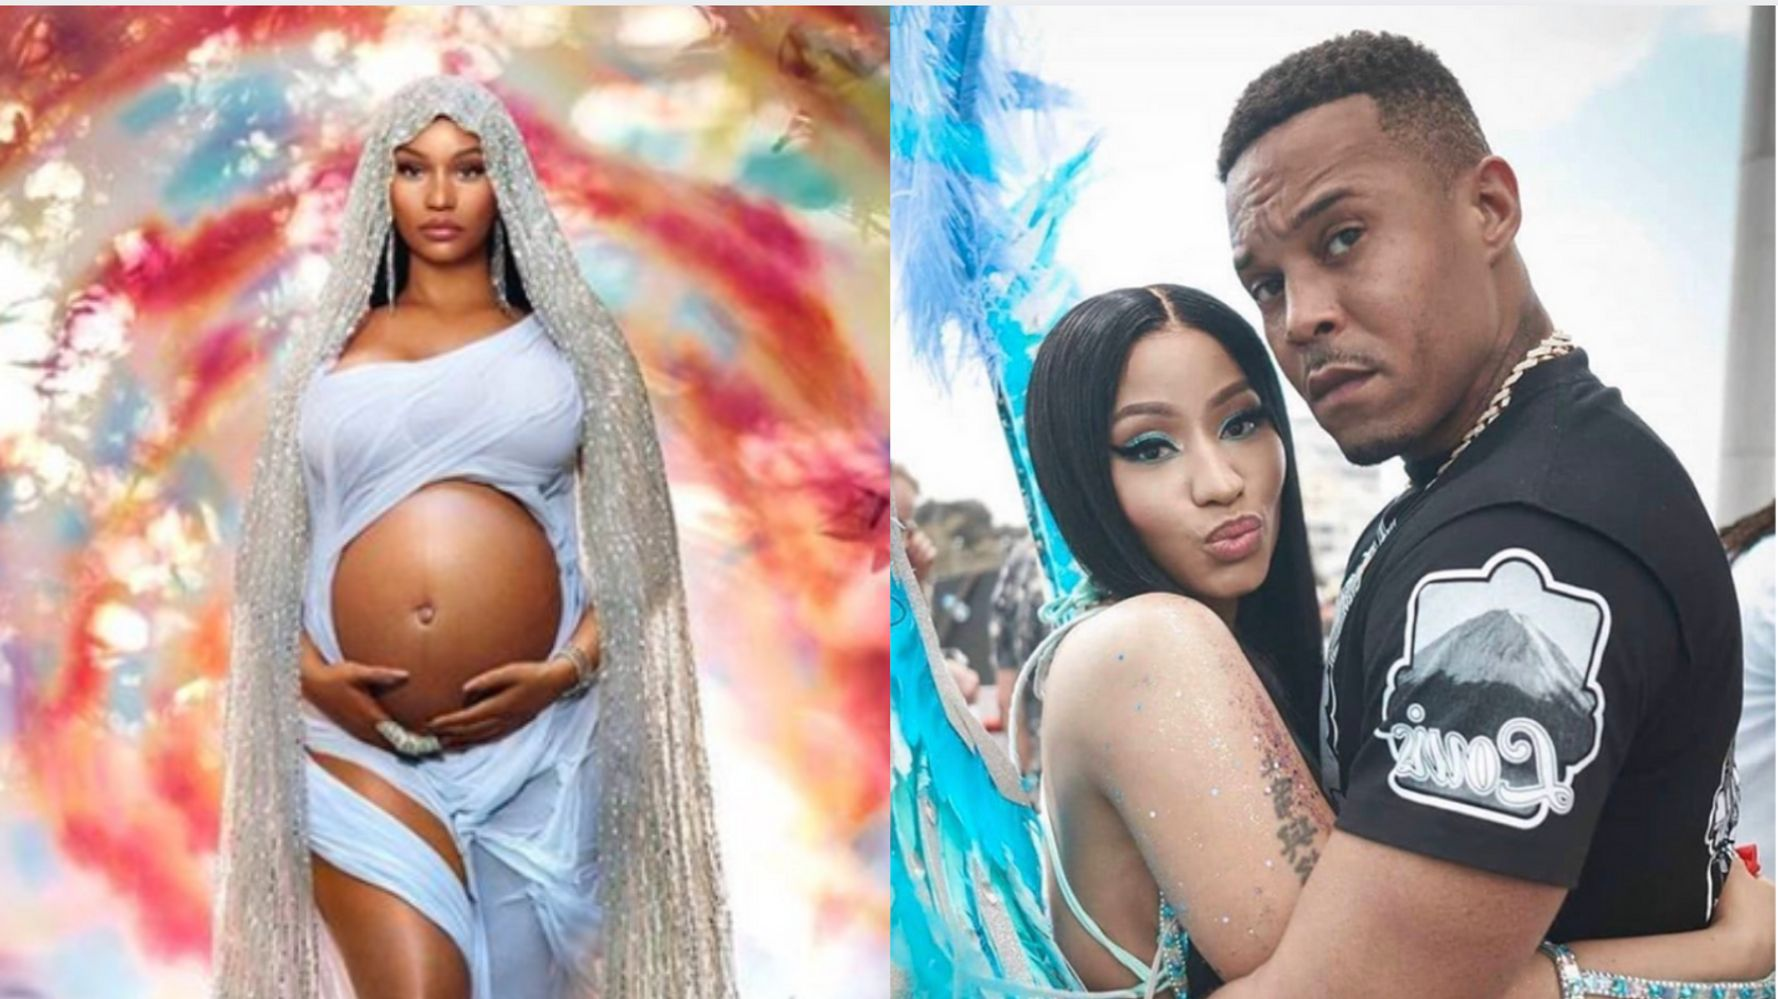 Nicki Minaj is Officially a Mom- Welcomed her First Child